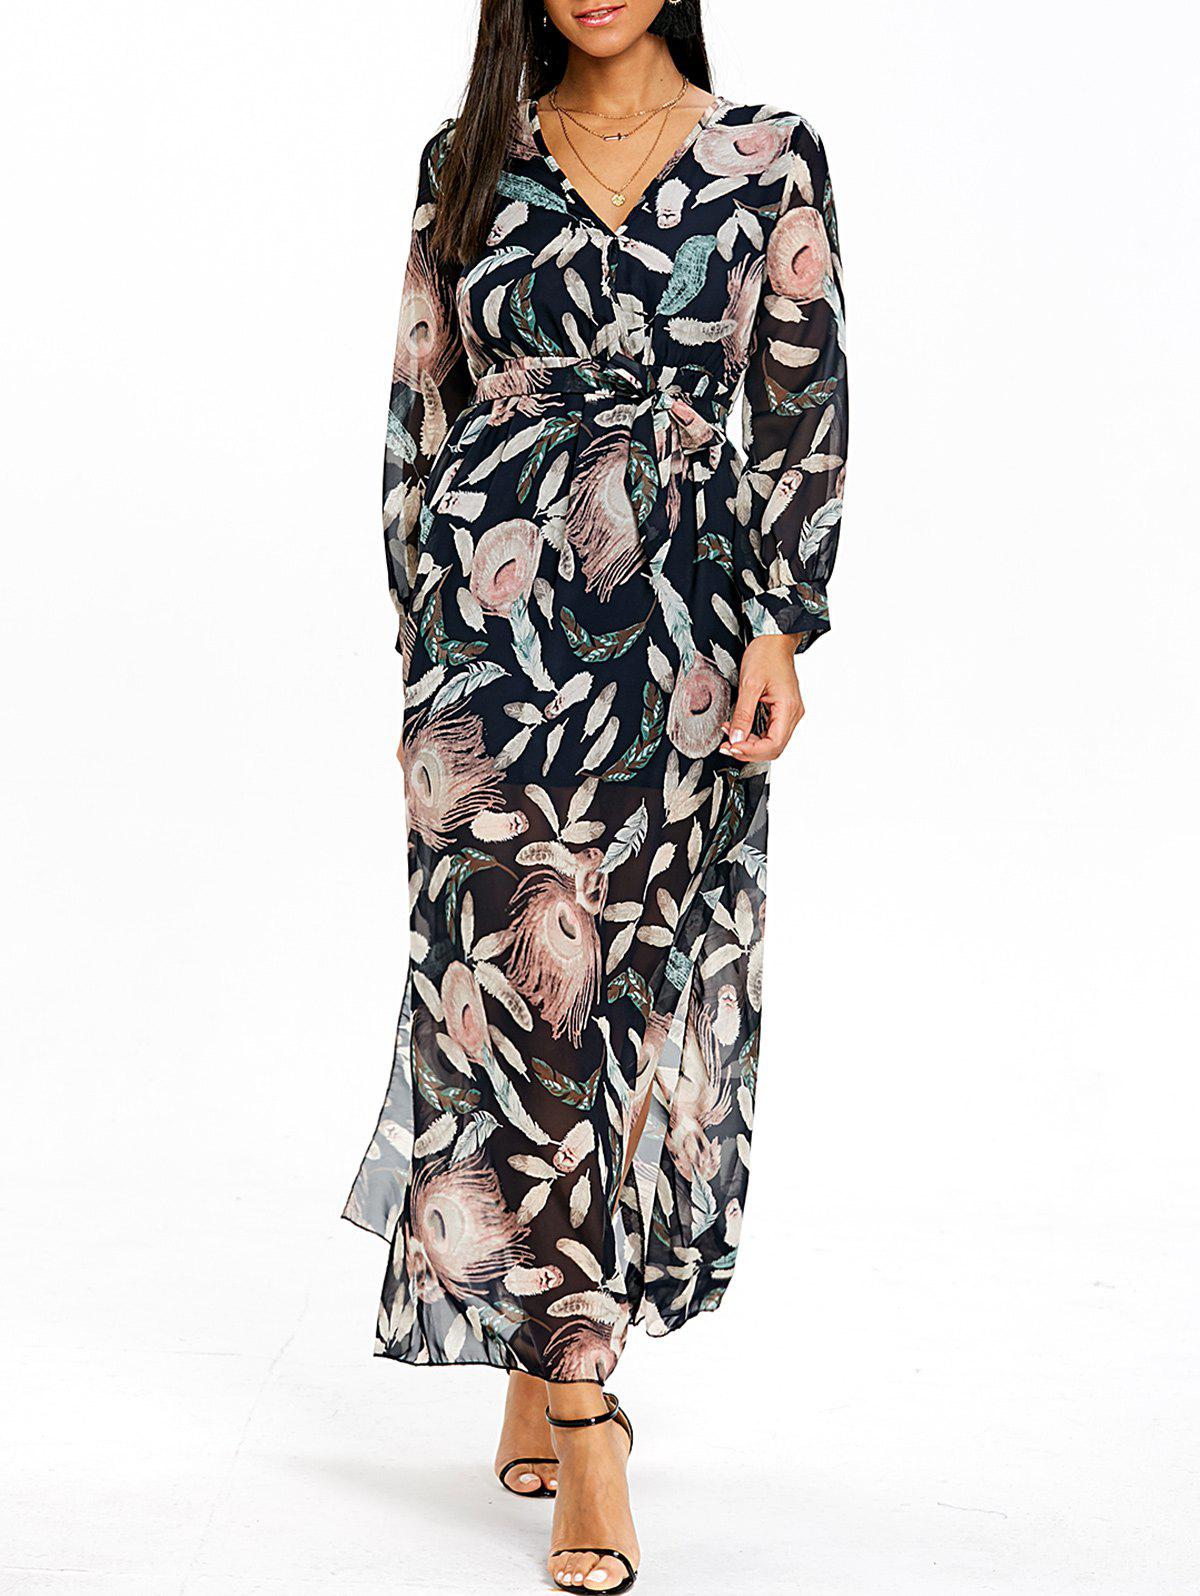 Feather Printed Surplice Dress - COLORMIX L